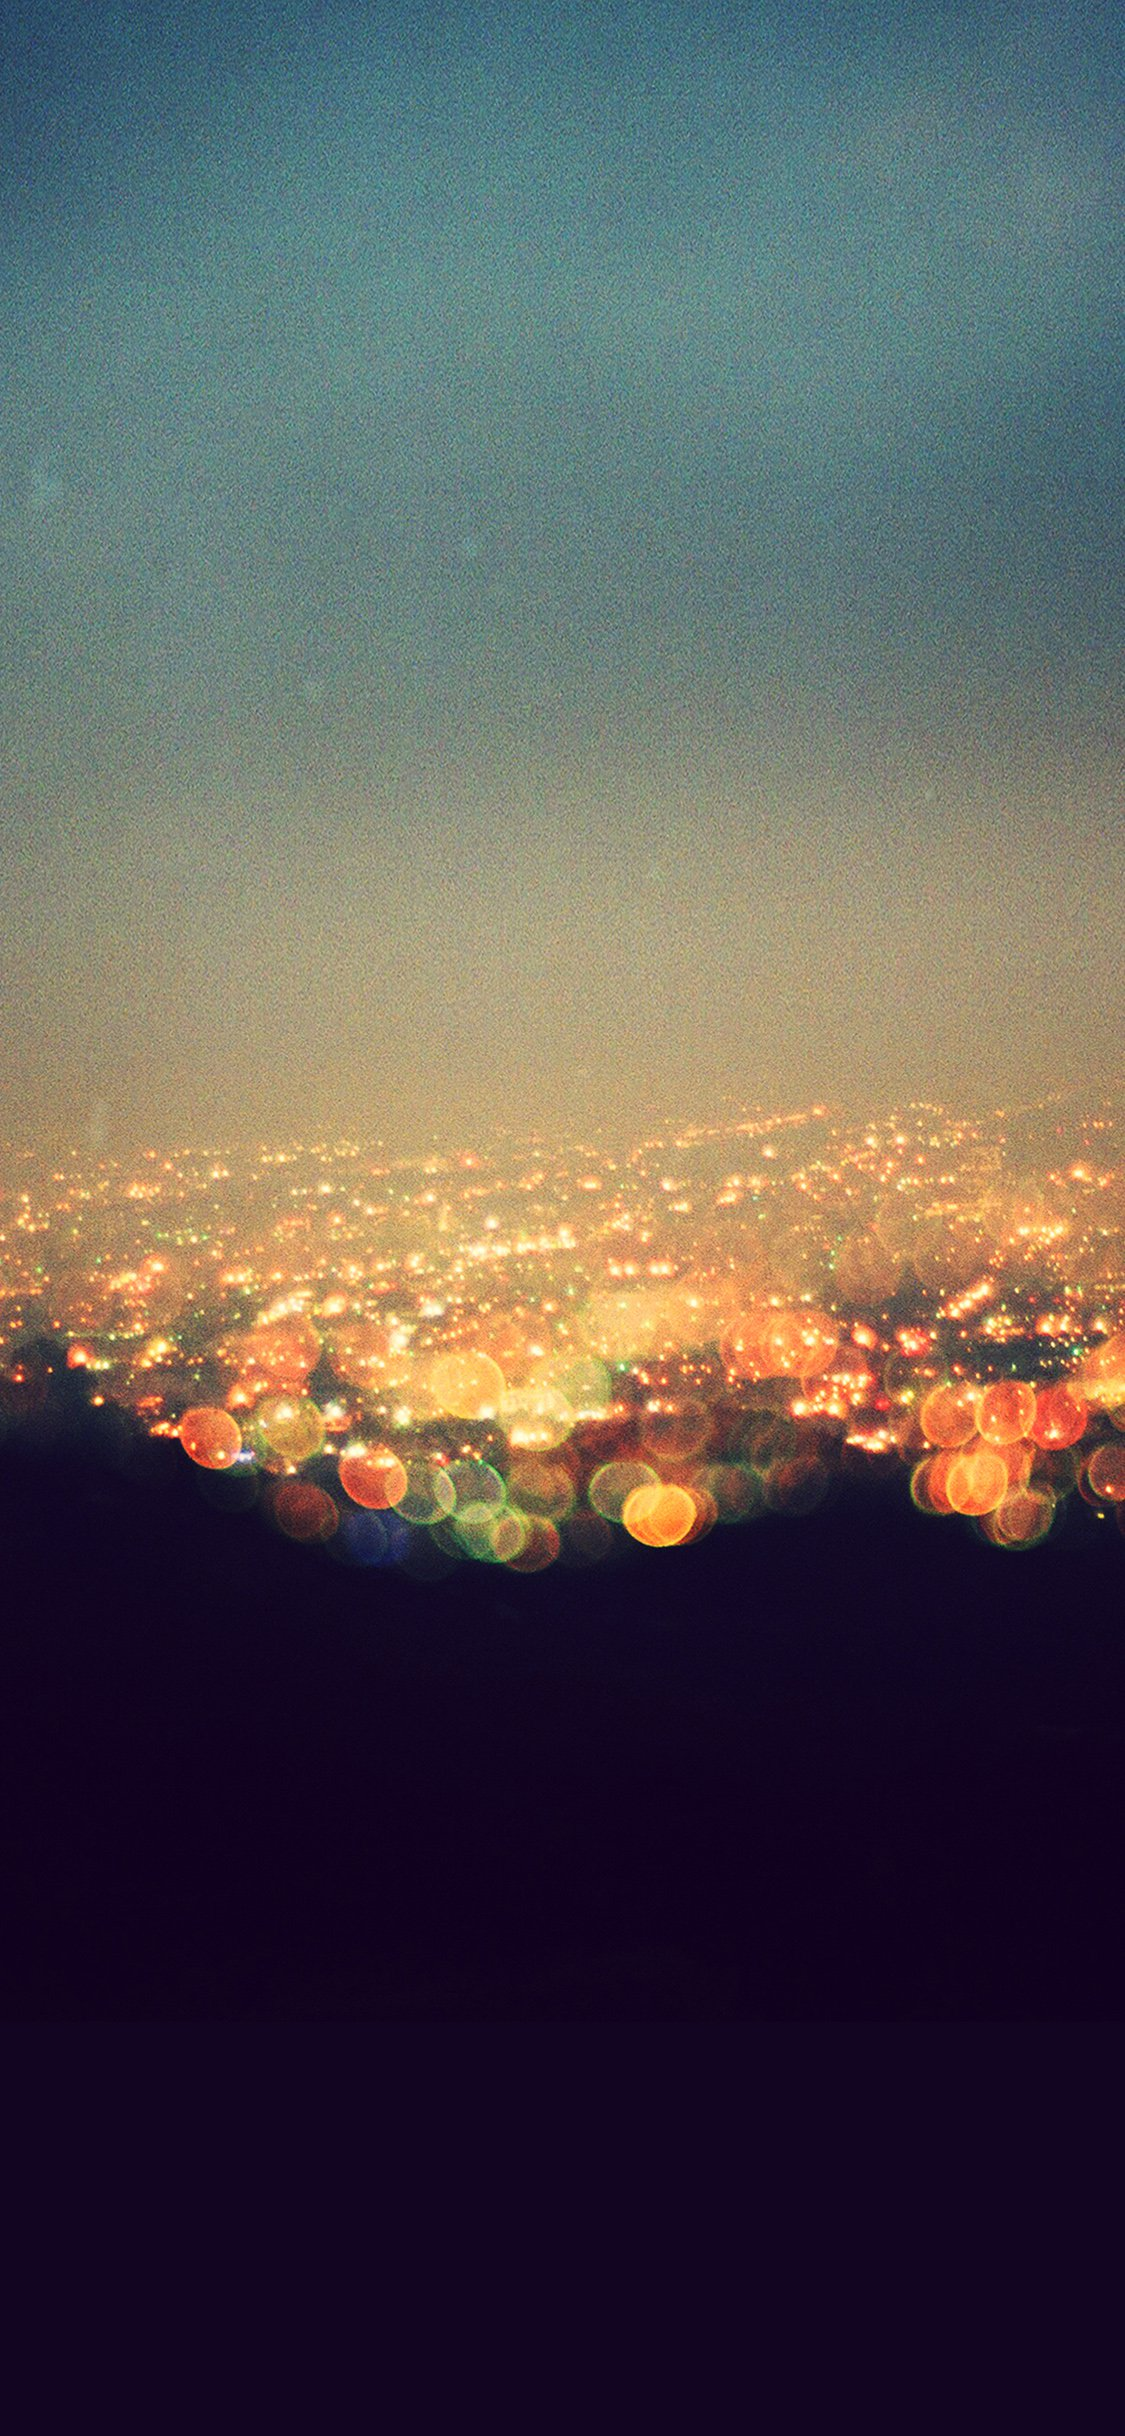 Bokeh Night City View Lights Iphone X Wallpapers Free Download